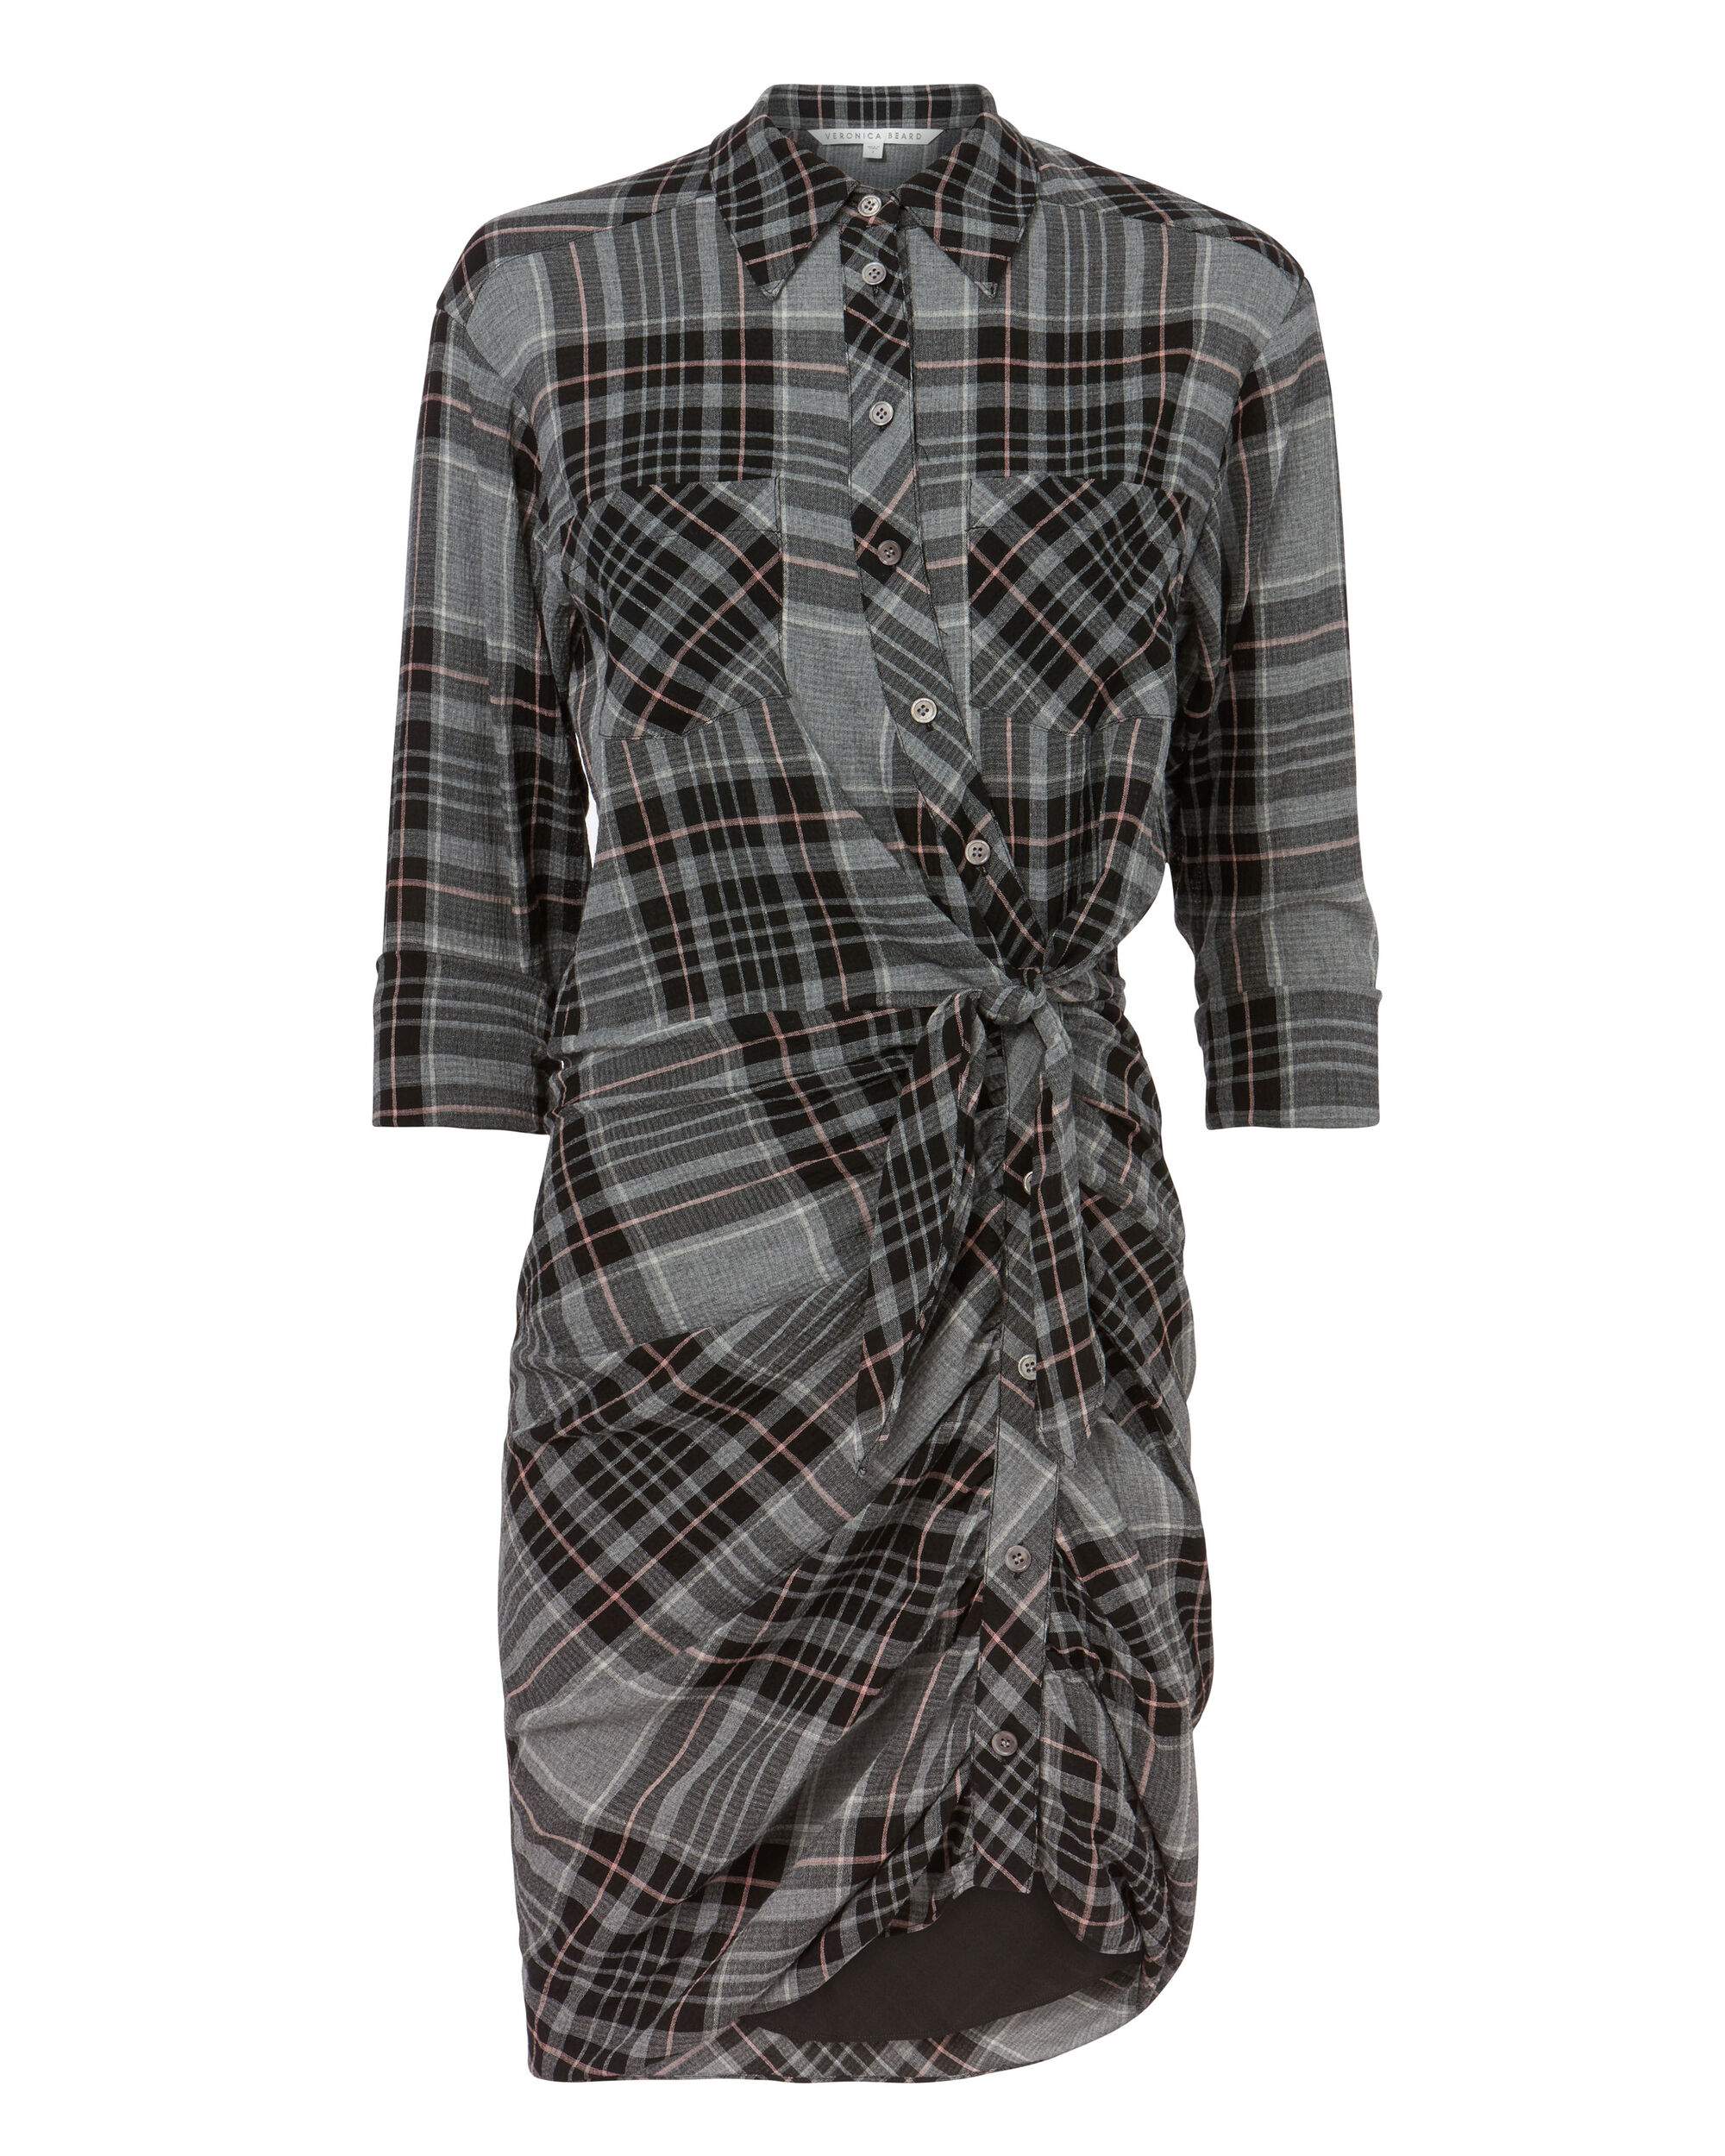 Sierra Plaid Dress, PATTERN, hi-res